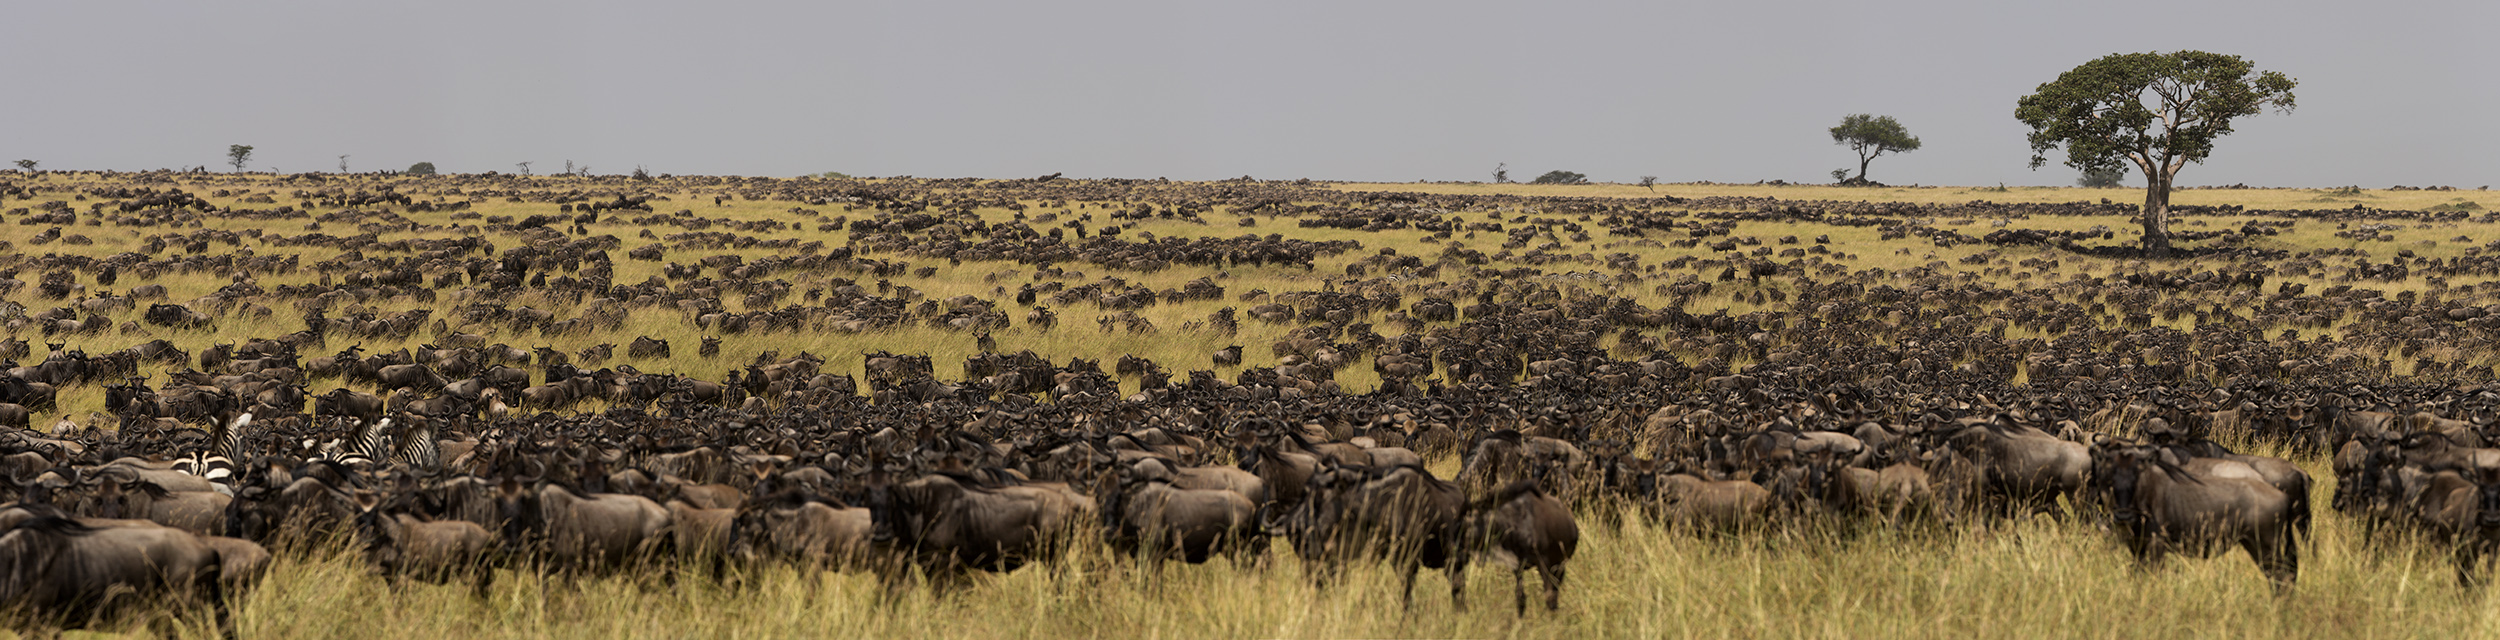 Wildebeest herd during the great migration in the Maasai Mara